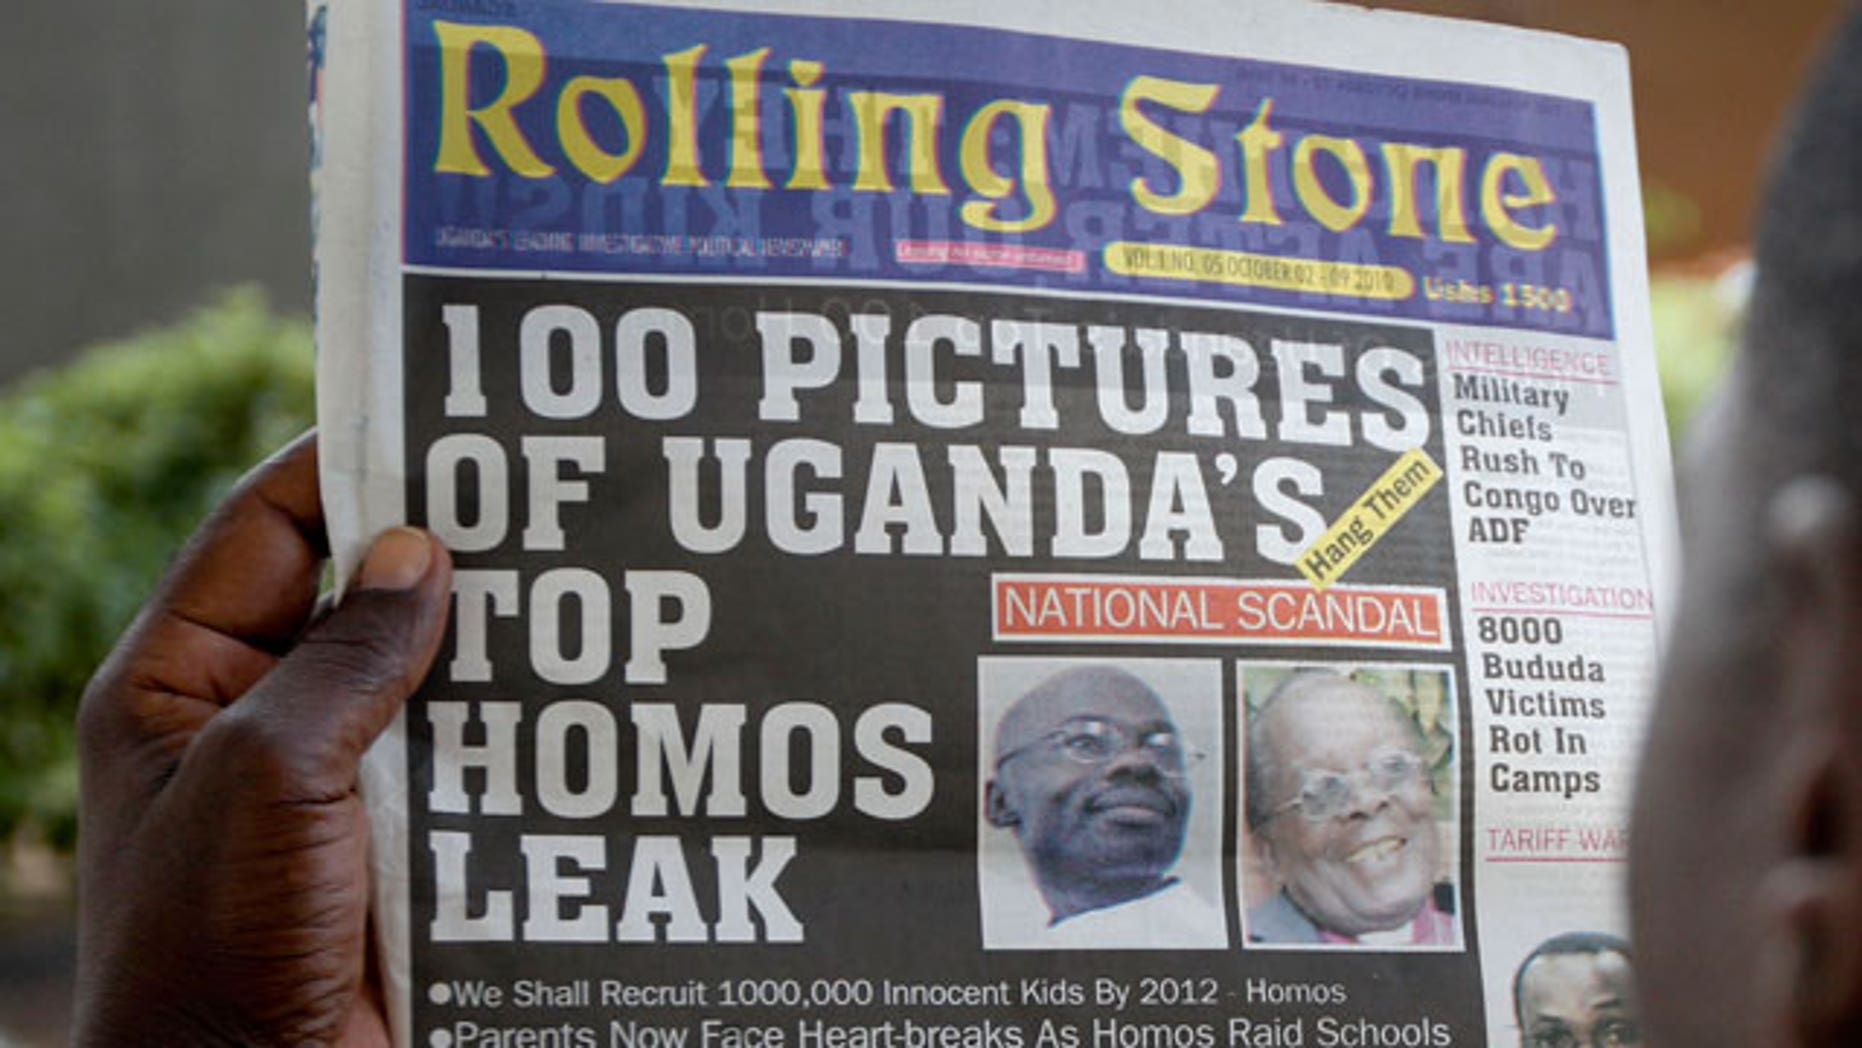 """A Ugandan man reads the headline of the Ugandan newspaper """"Rolling Stone"""" in Kampala, Uganda. Tuesday, Oct. 19, 2010, in which the papers reveals the identity of allegedly gay members of Ugandan society and calls for public punishment against those individuals."""